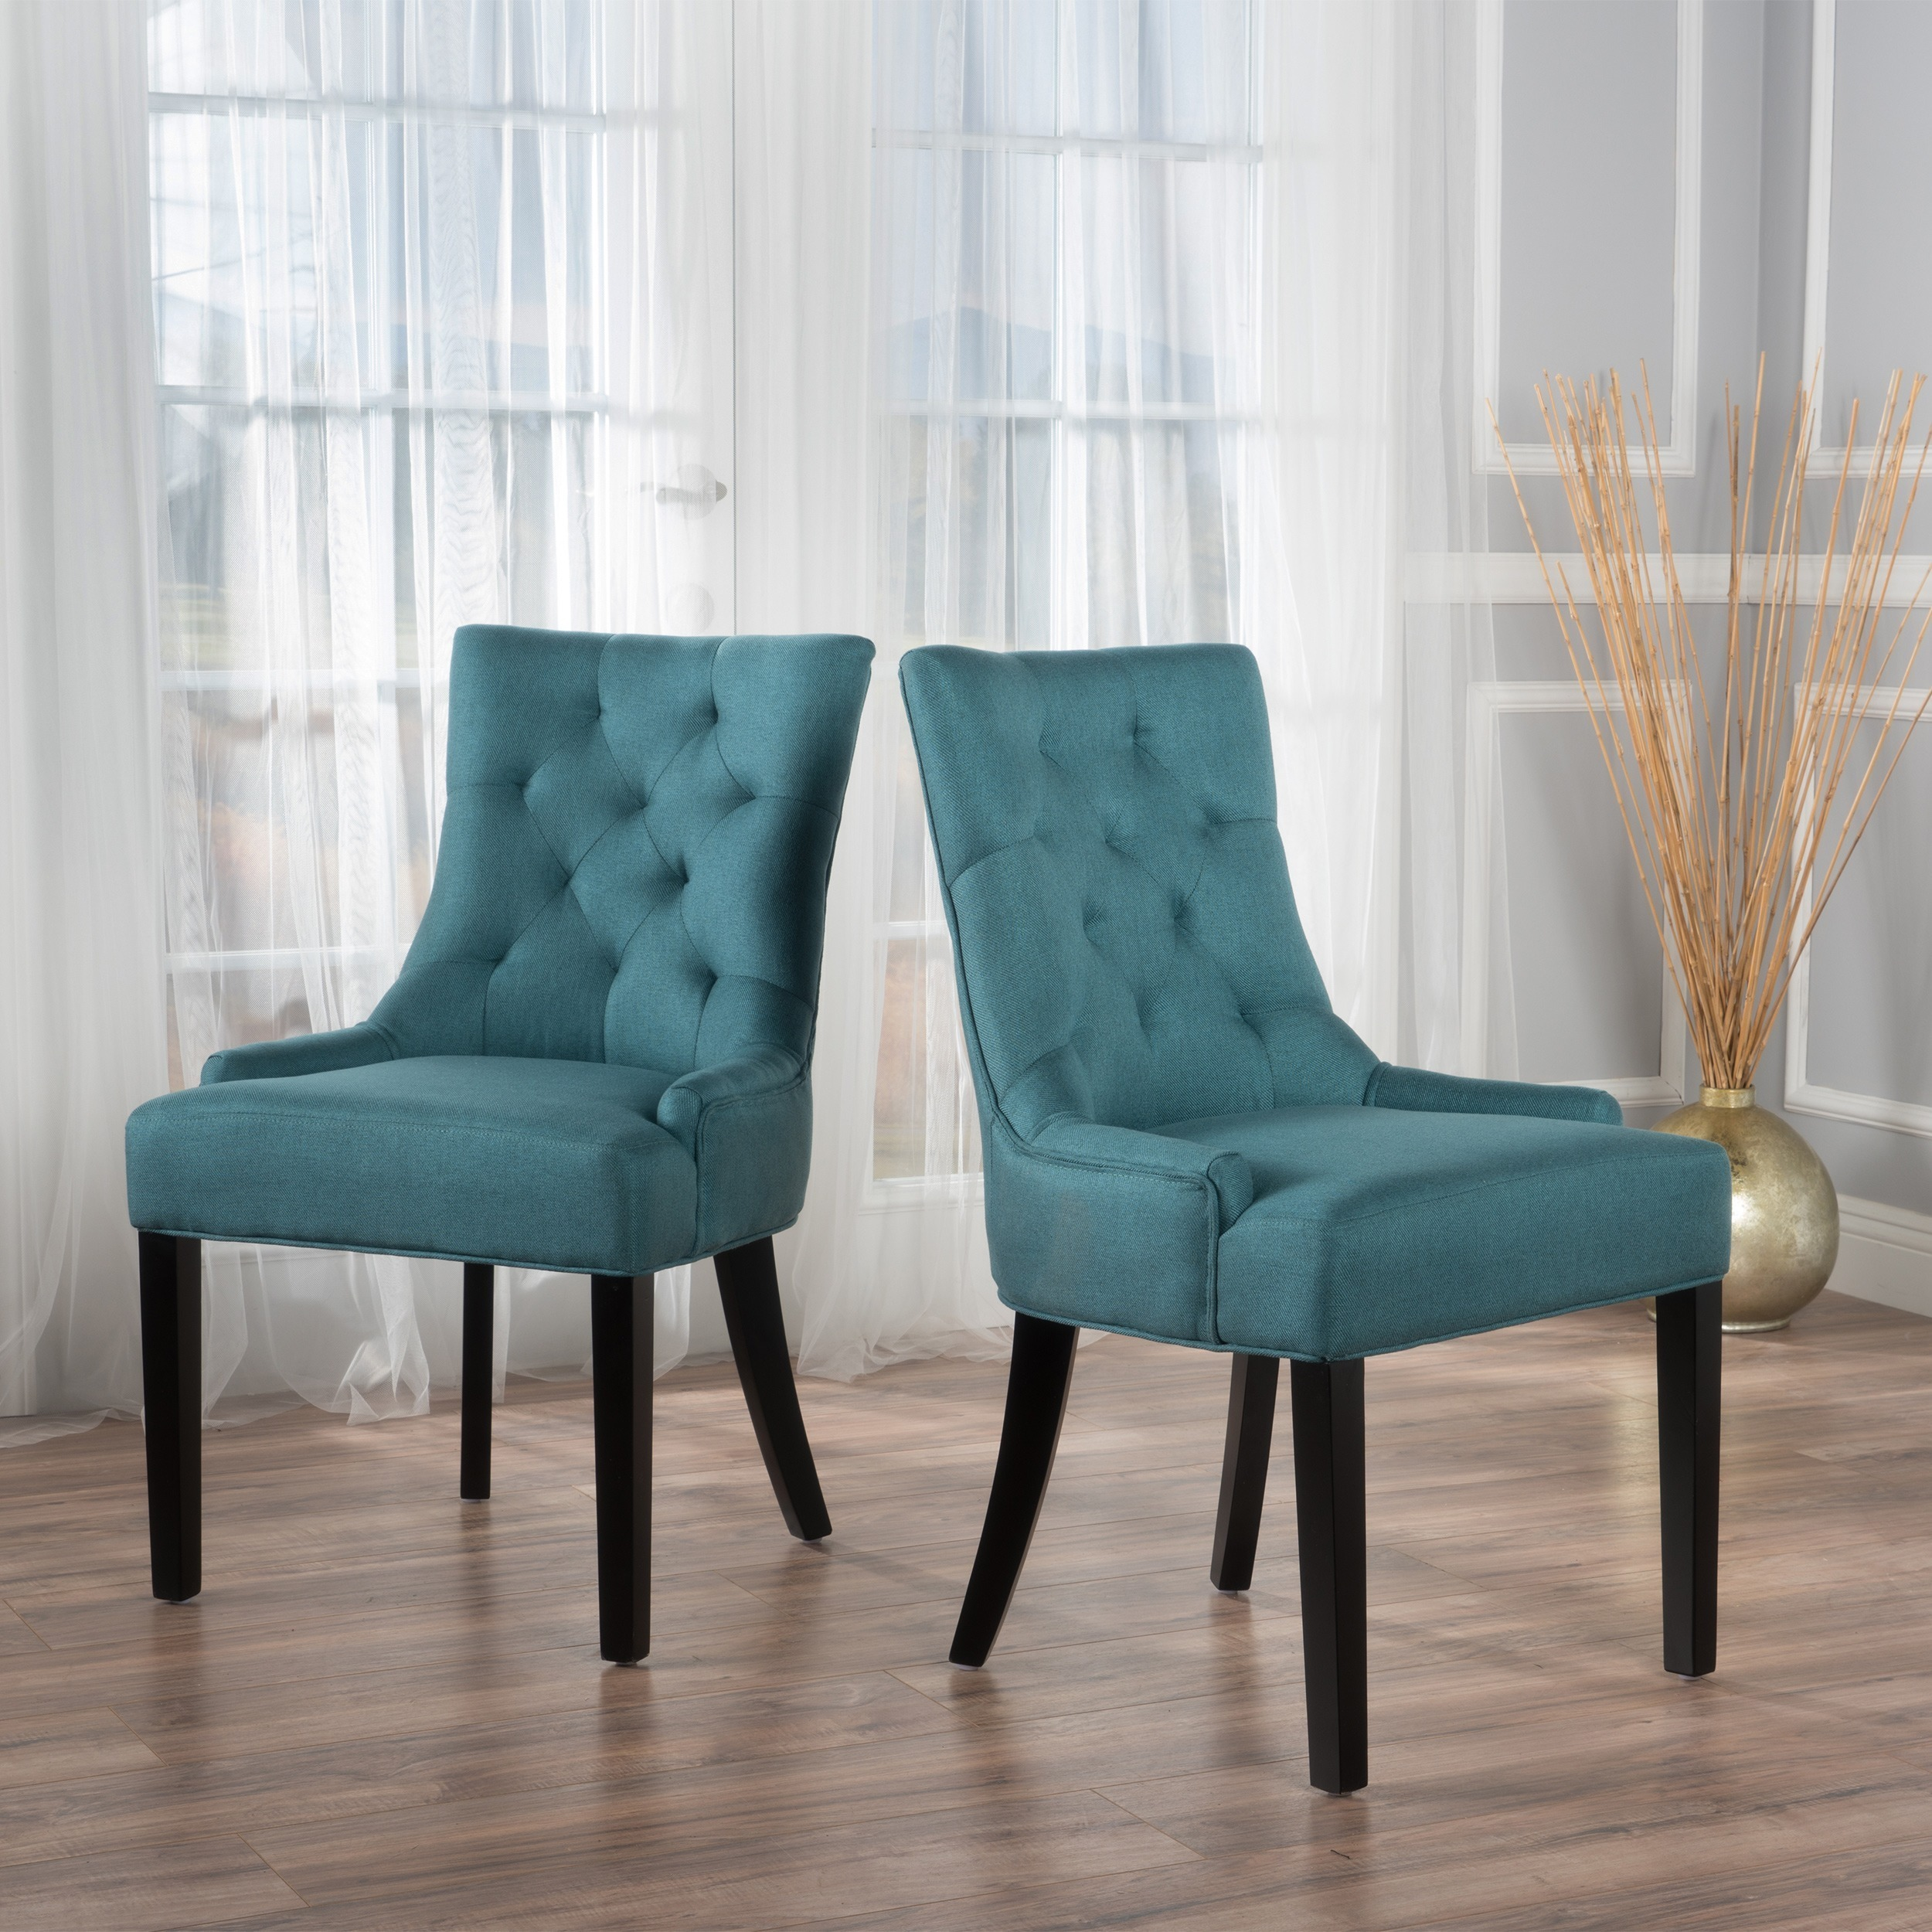 Shop Hayden Tufted Fabric Dining/ Accent Chair (Set of 2) by ...